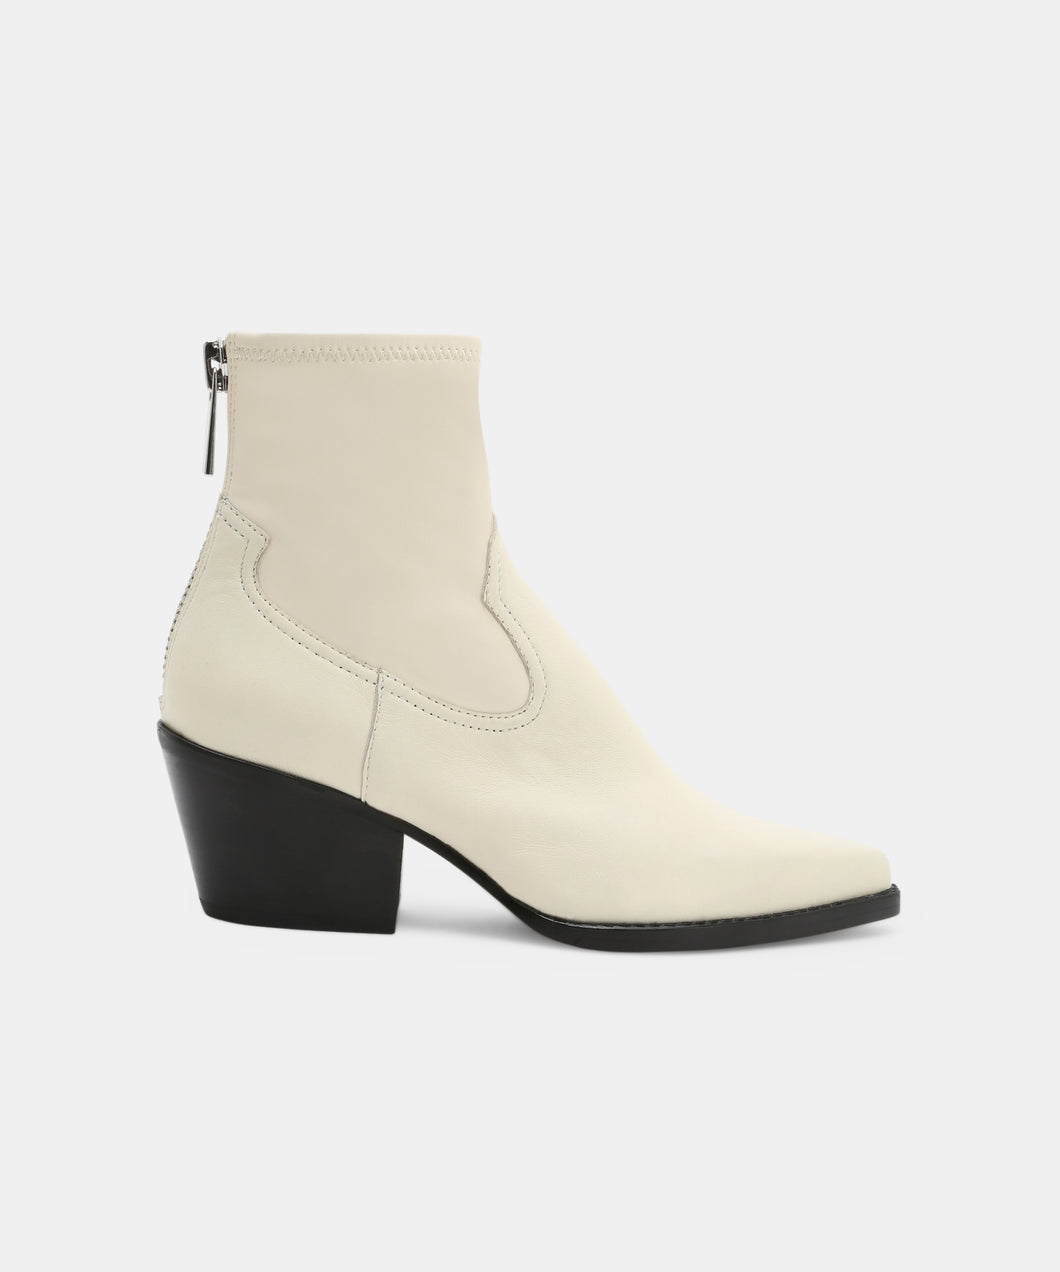 SHANTA BOOTIES OFF WHITE -   Dolce Vita